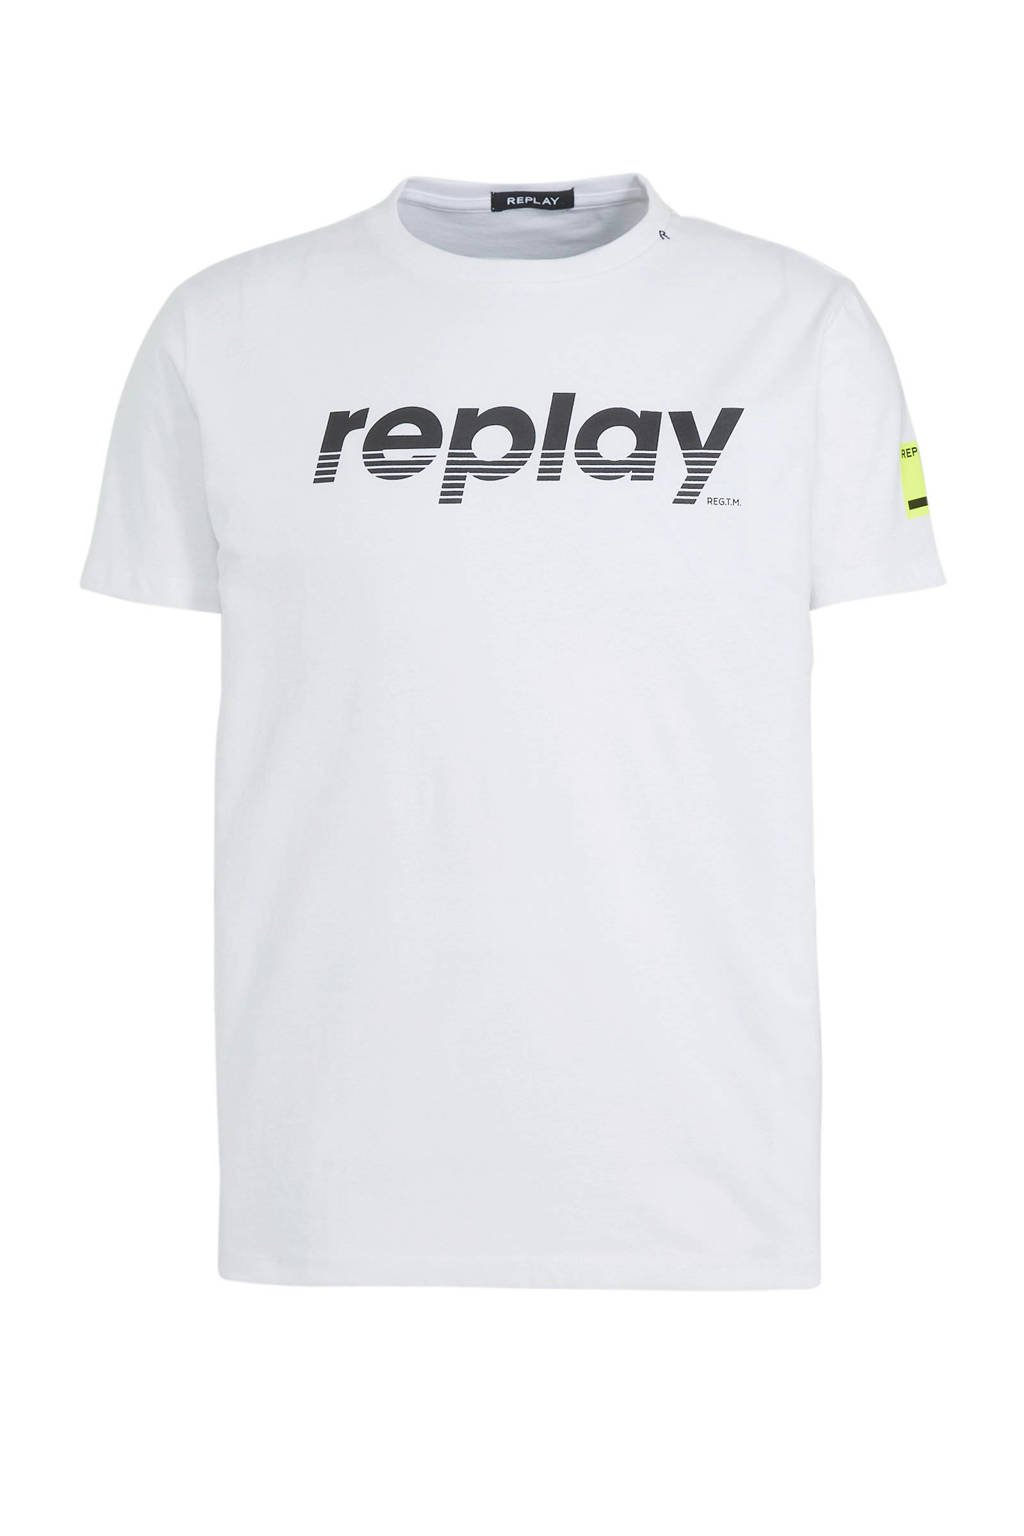 REPLAY T-shirt met logo wit, Wit